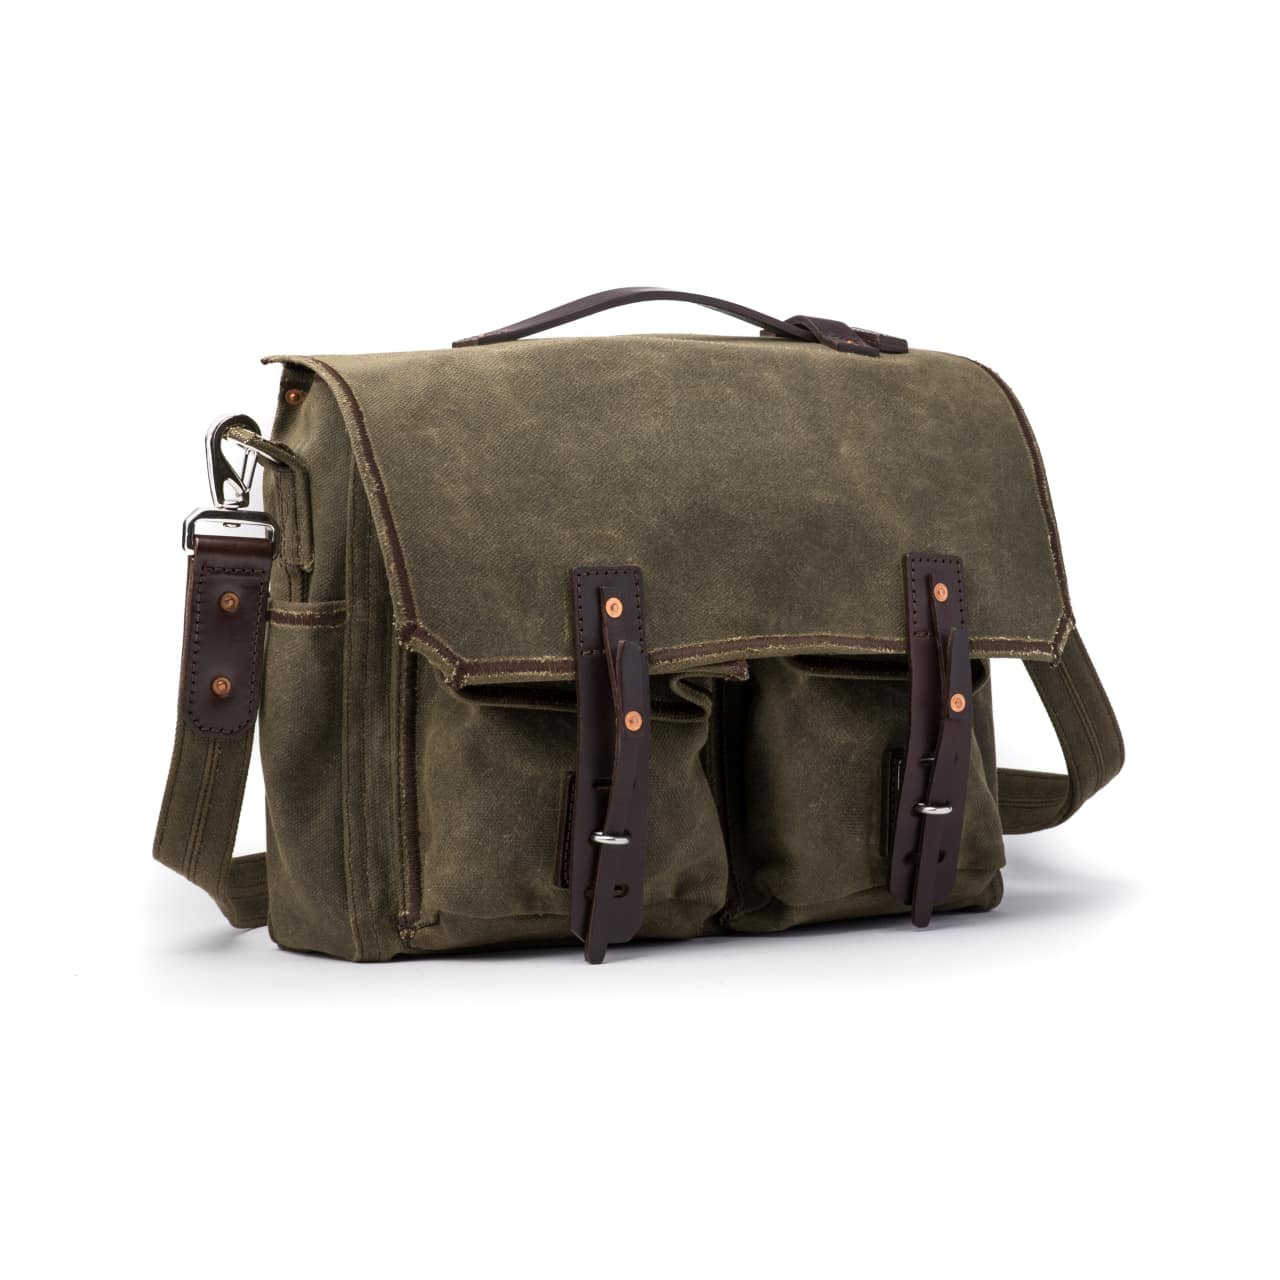 Saddleback Leather Canvas Front Pocket Gear Bag - Messenger Bag with 100 Year Warranty